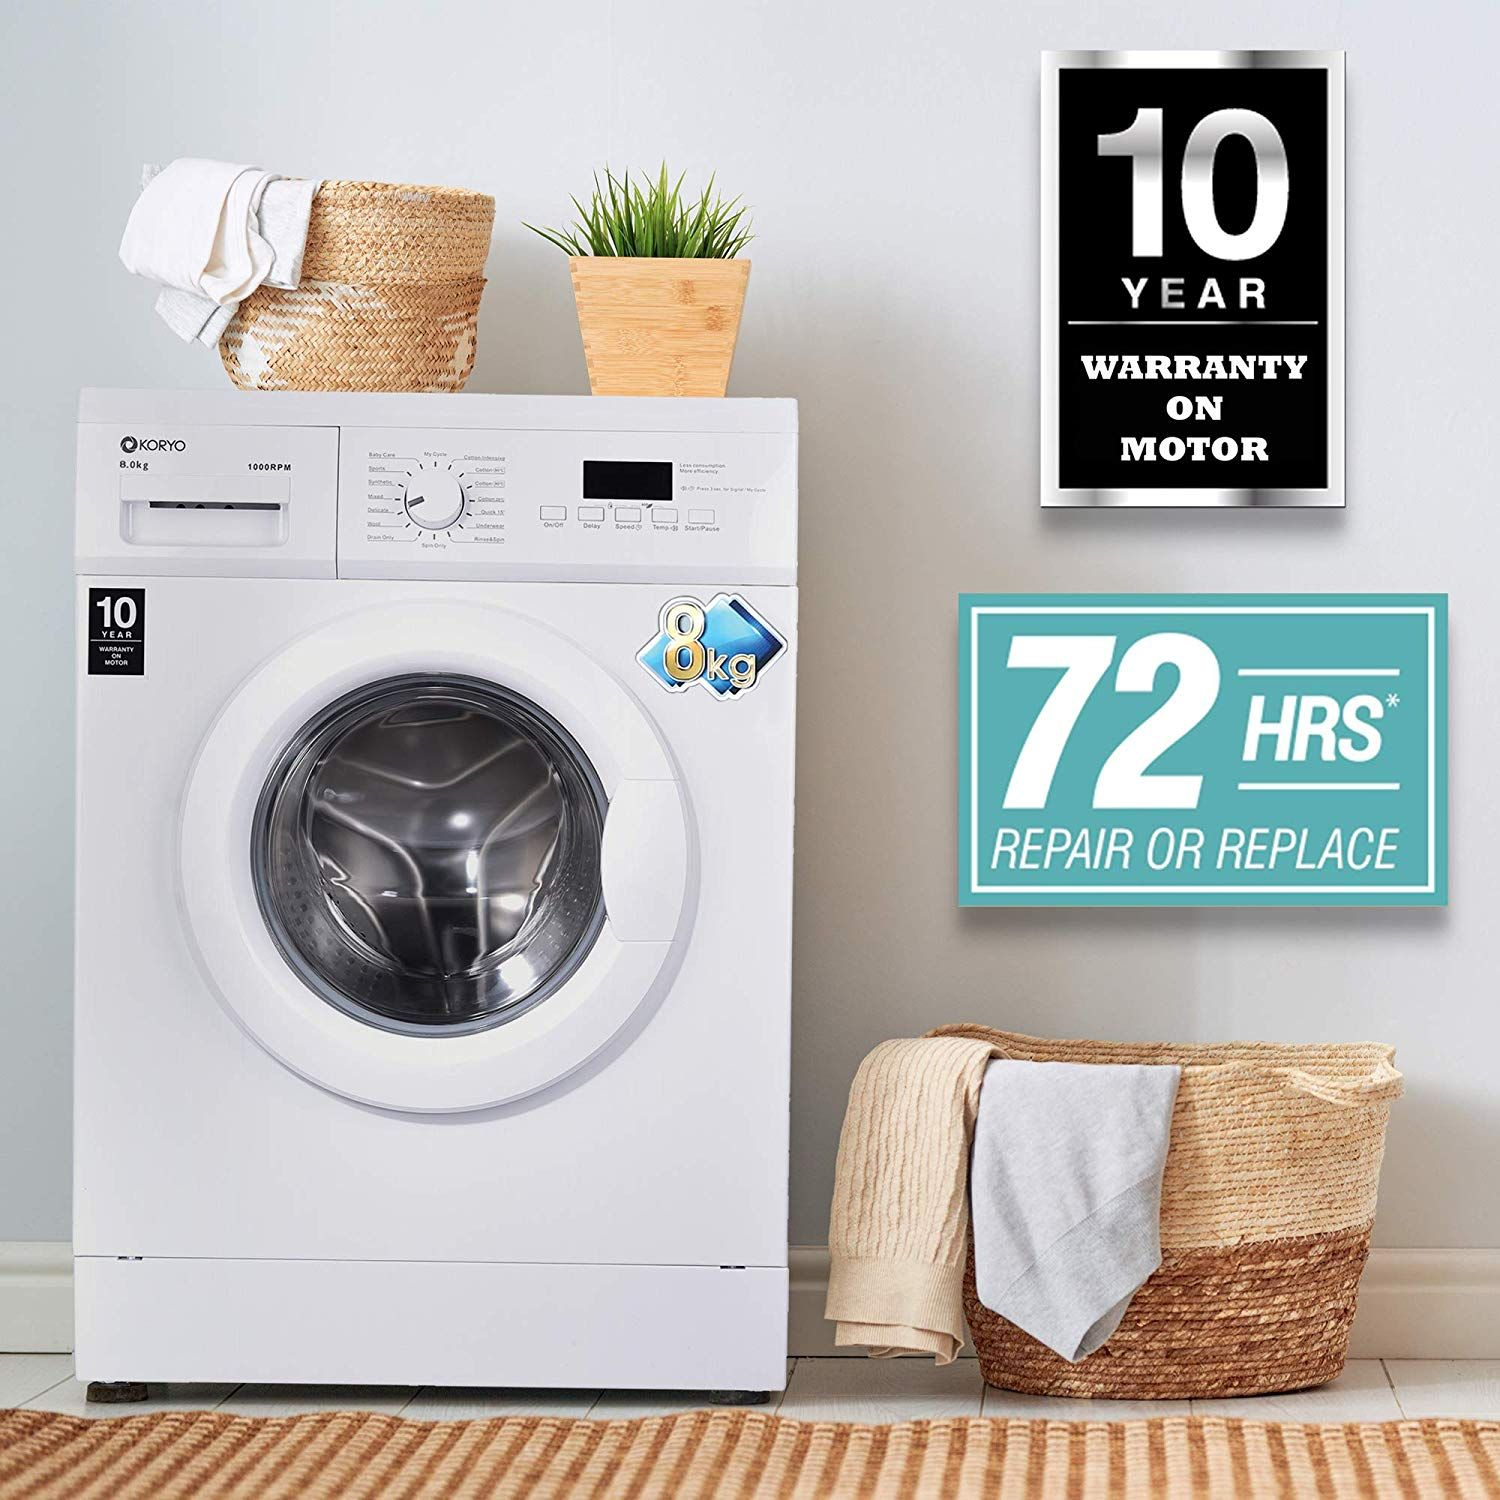 Shop Imported Maytag 15kg Washer For Sale Maytag Usa Commercial Laundry 10 Off 5 Year Warranty Get O Commercial Laundry Laundry Laundry Equipment